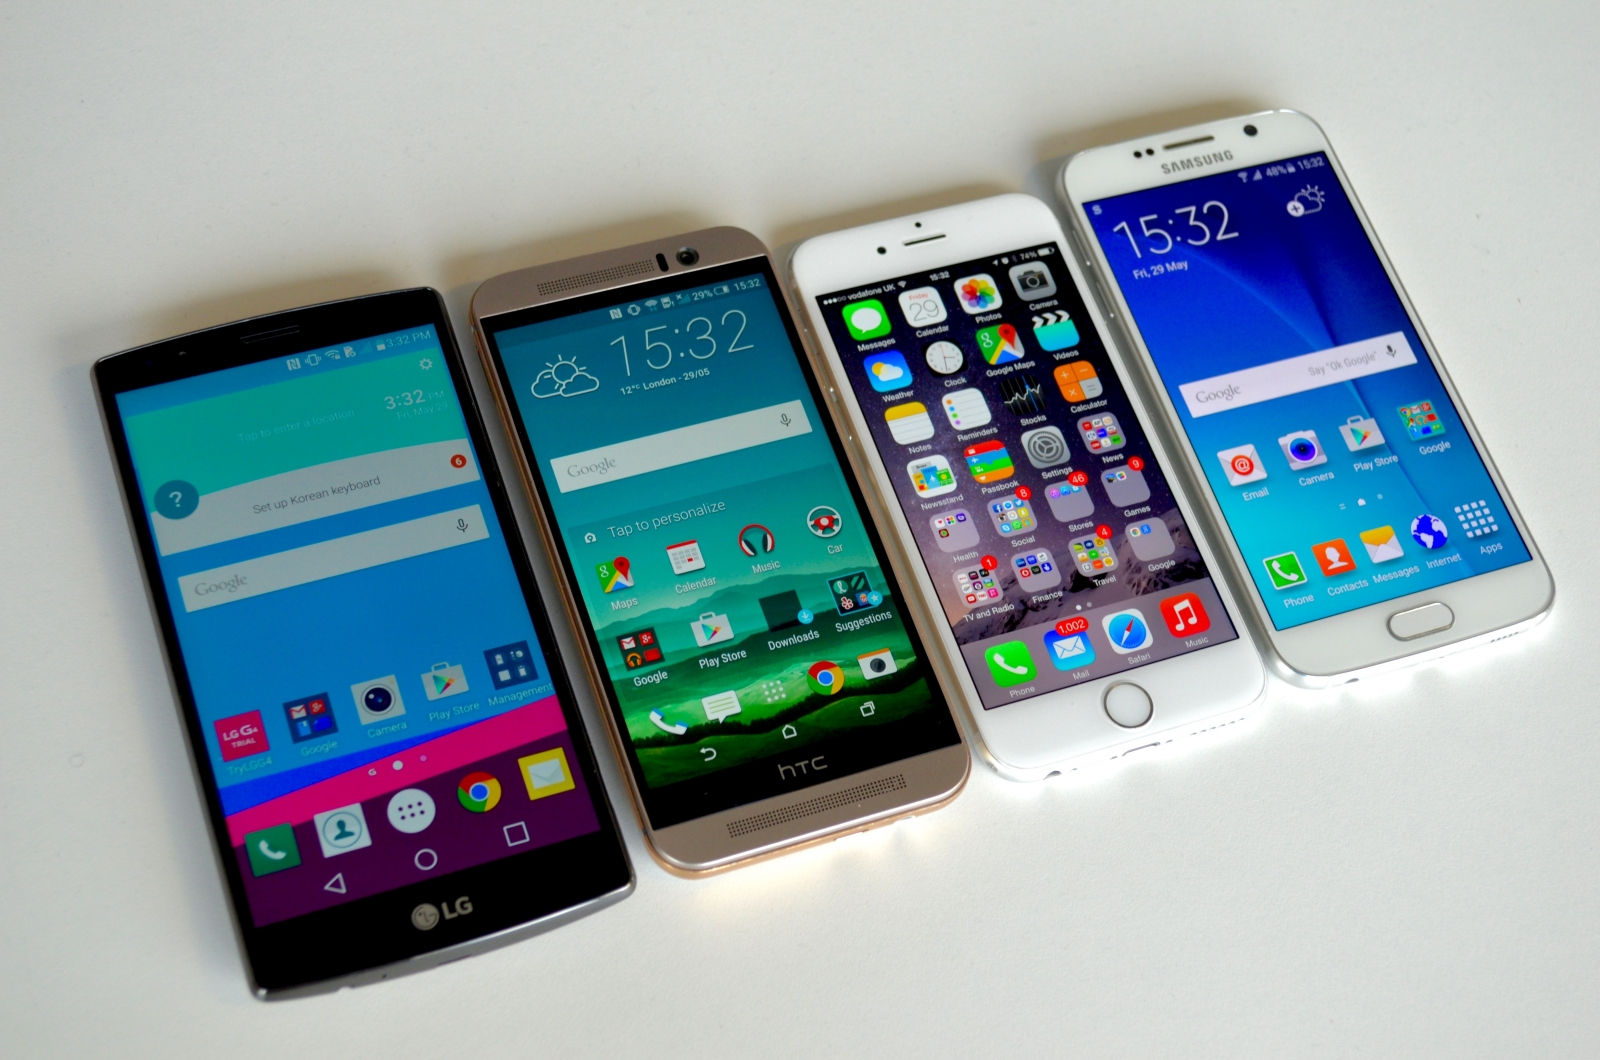 iPhone Galaxy S6 One M9 LG G4